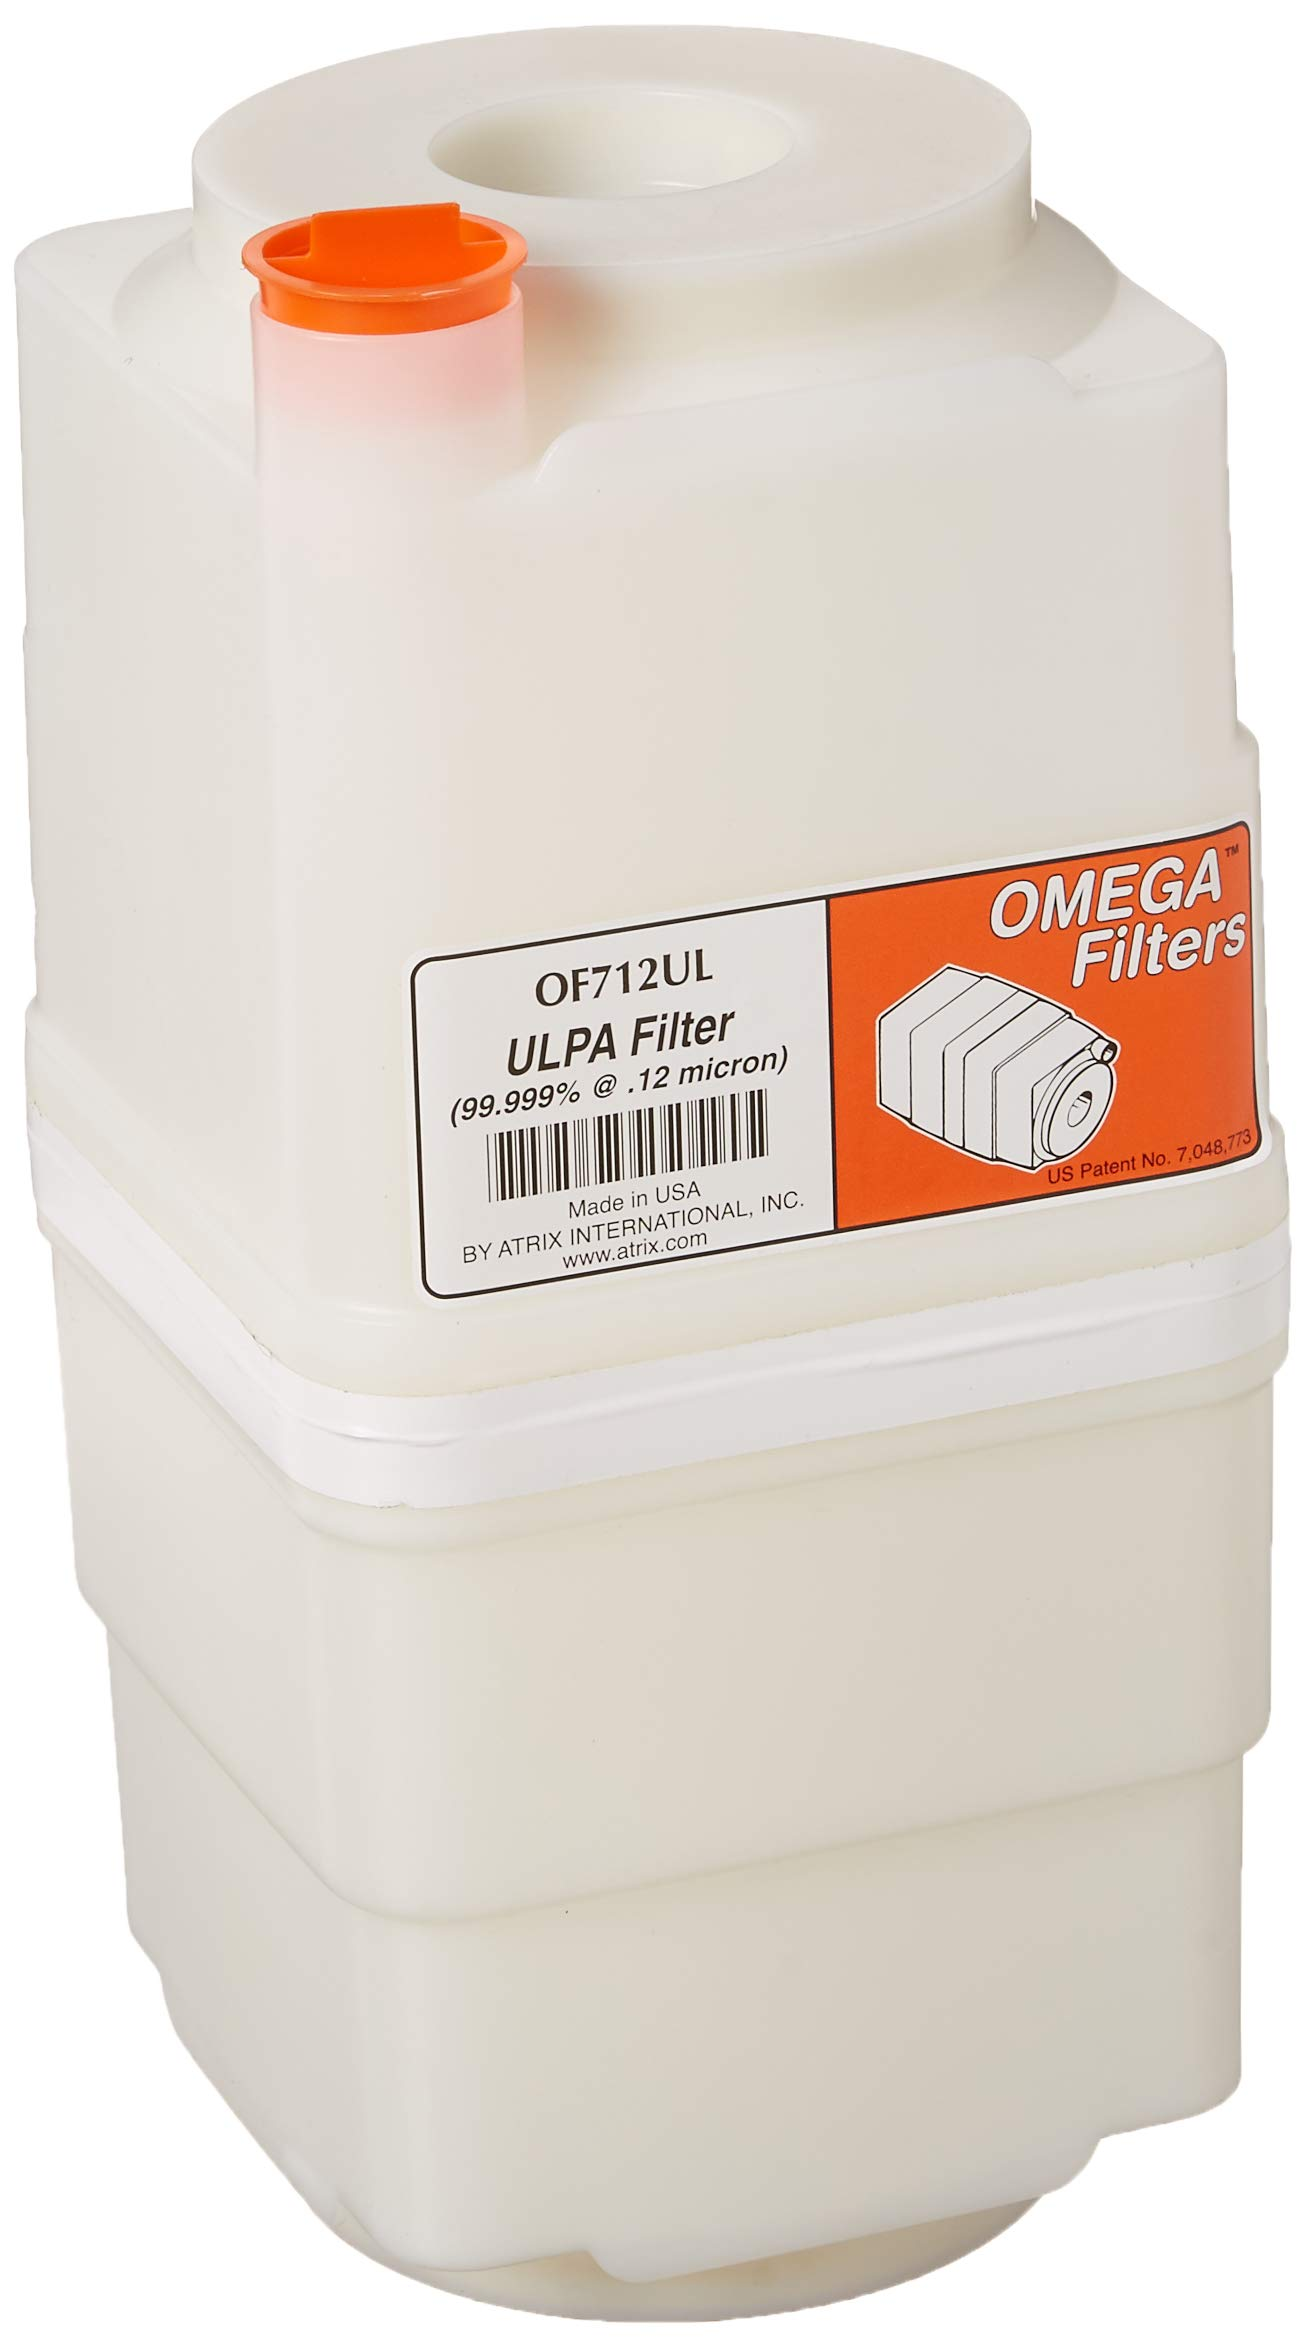 Atrix OF712UL ULPA Filter for Omega Series, 1-Gallon by Atrix